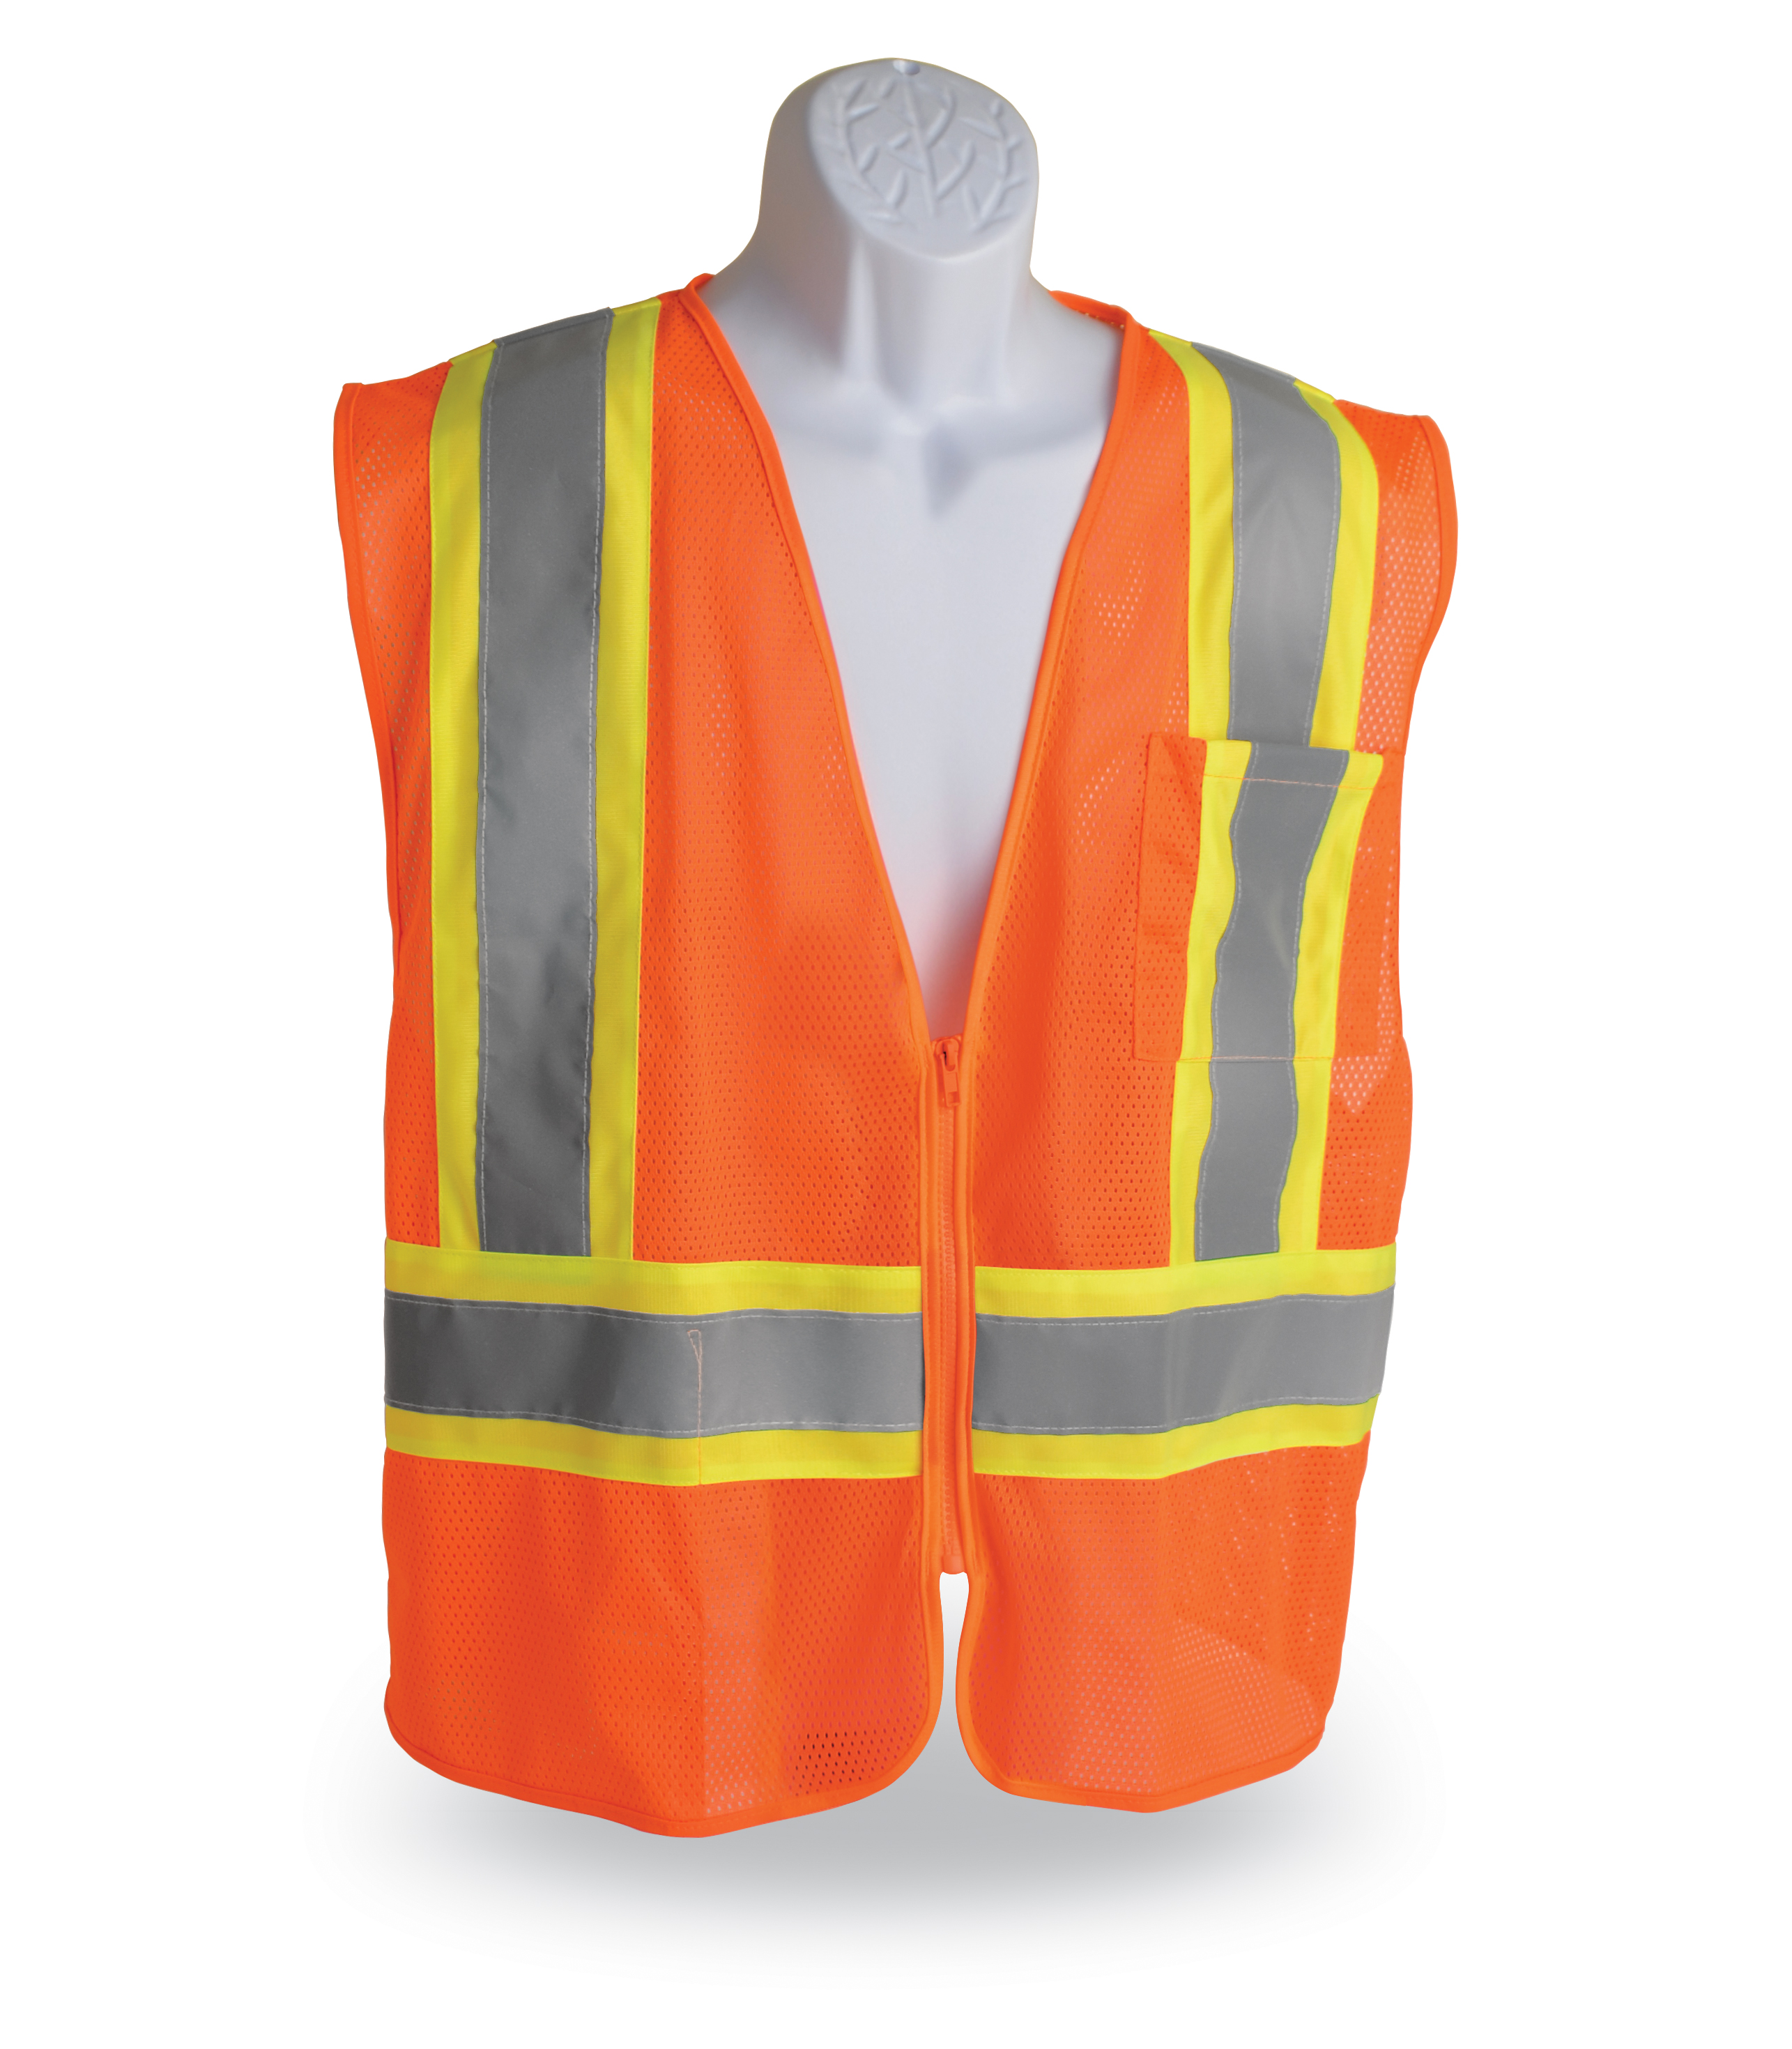 INDUSTRIAL SAFETY WORK VEST